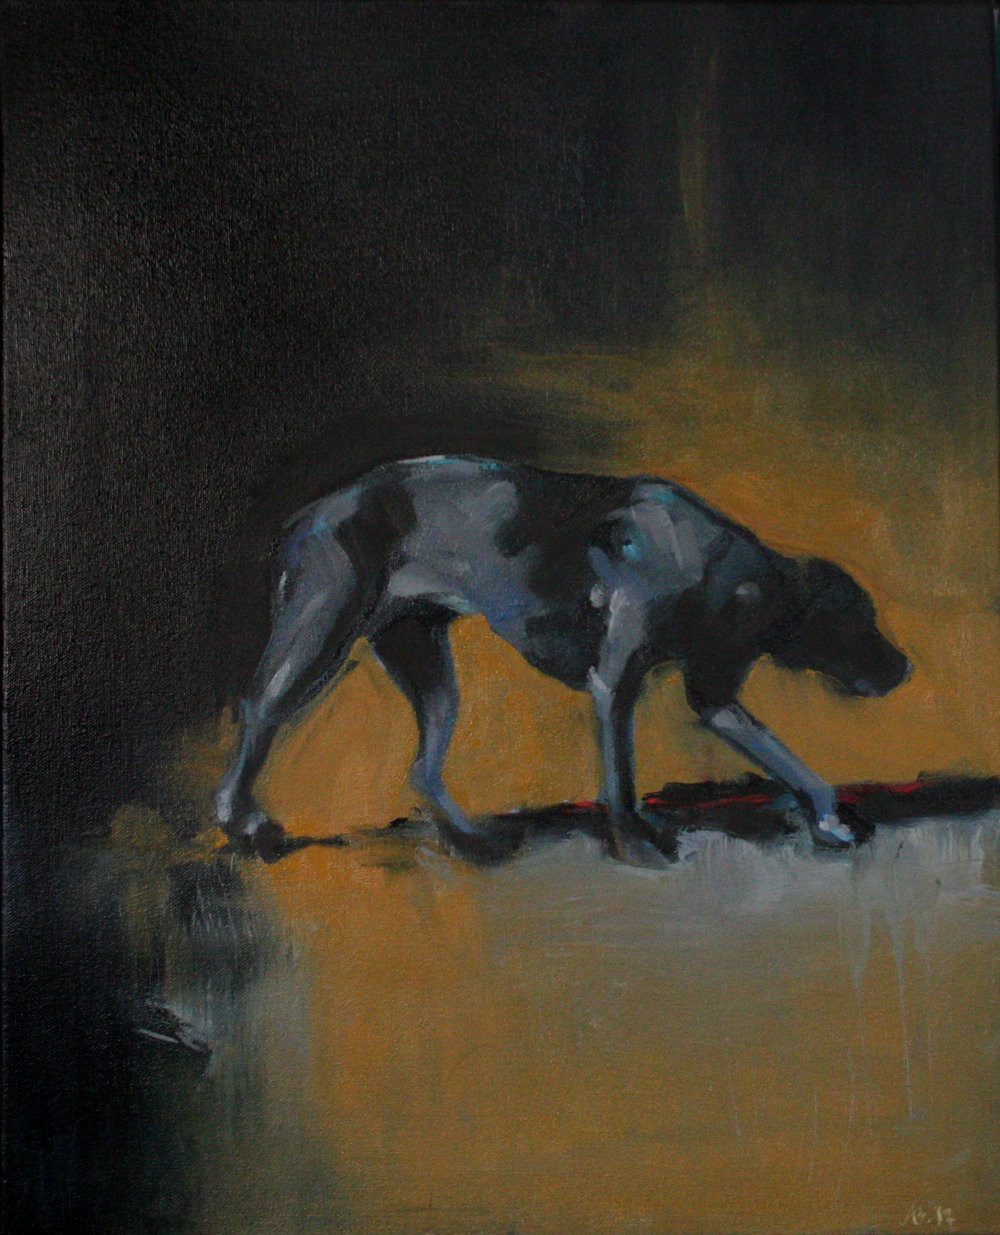 Study of a Black Dog #1